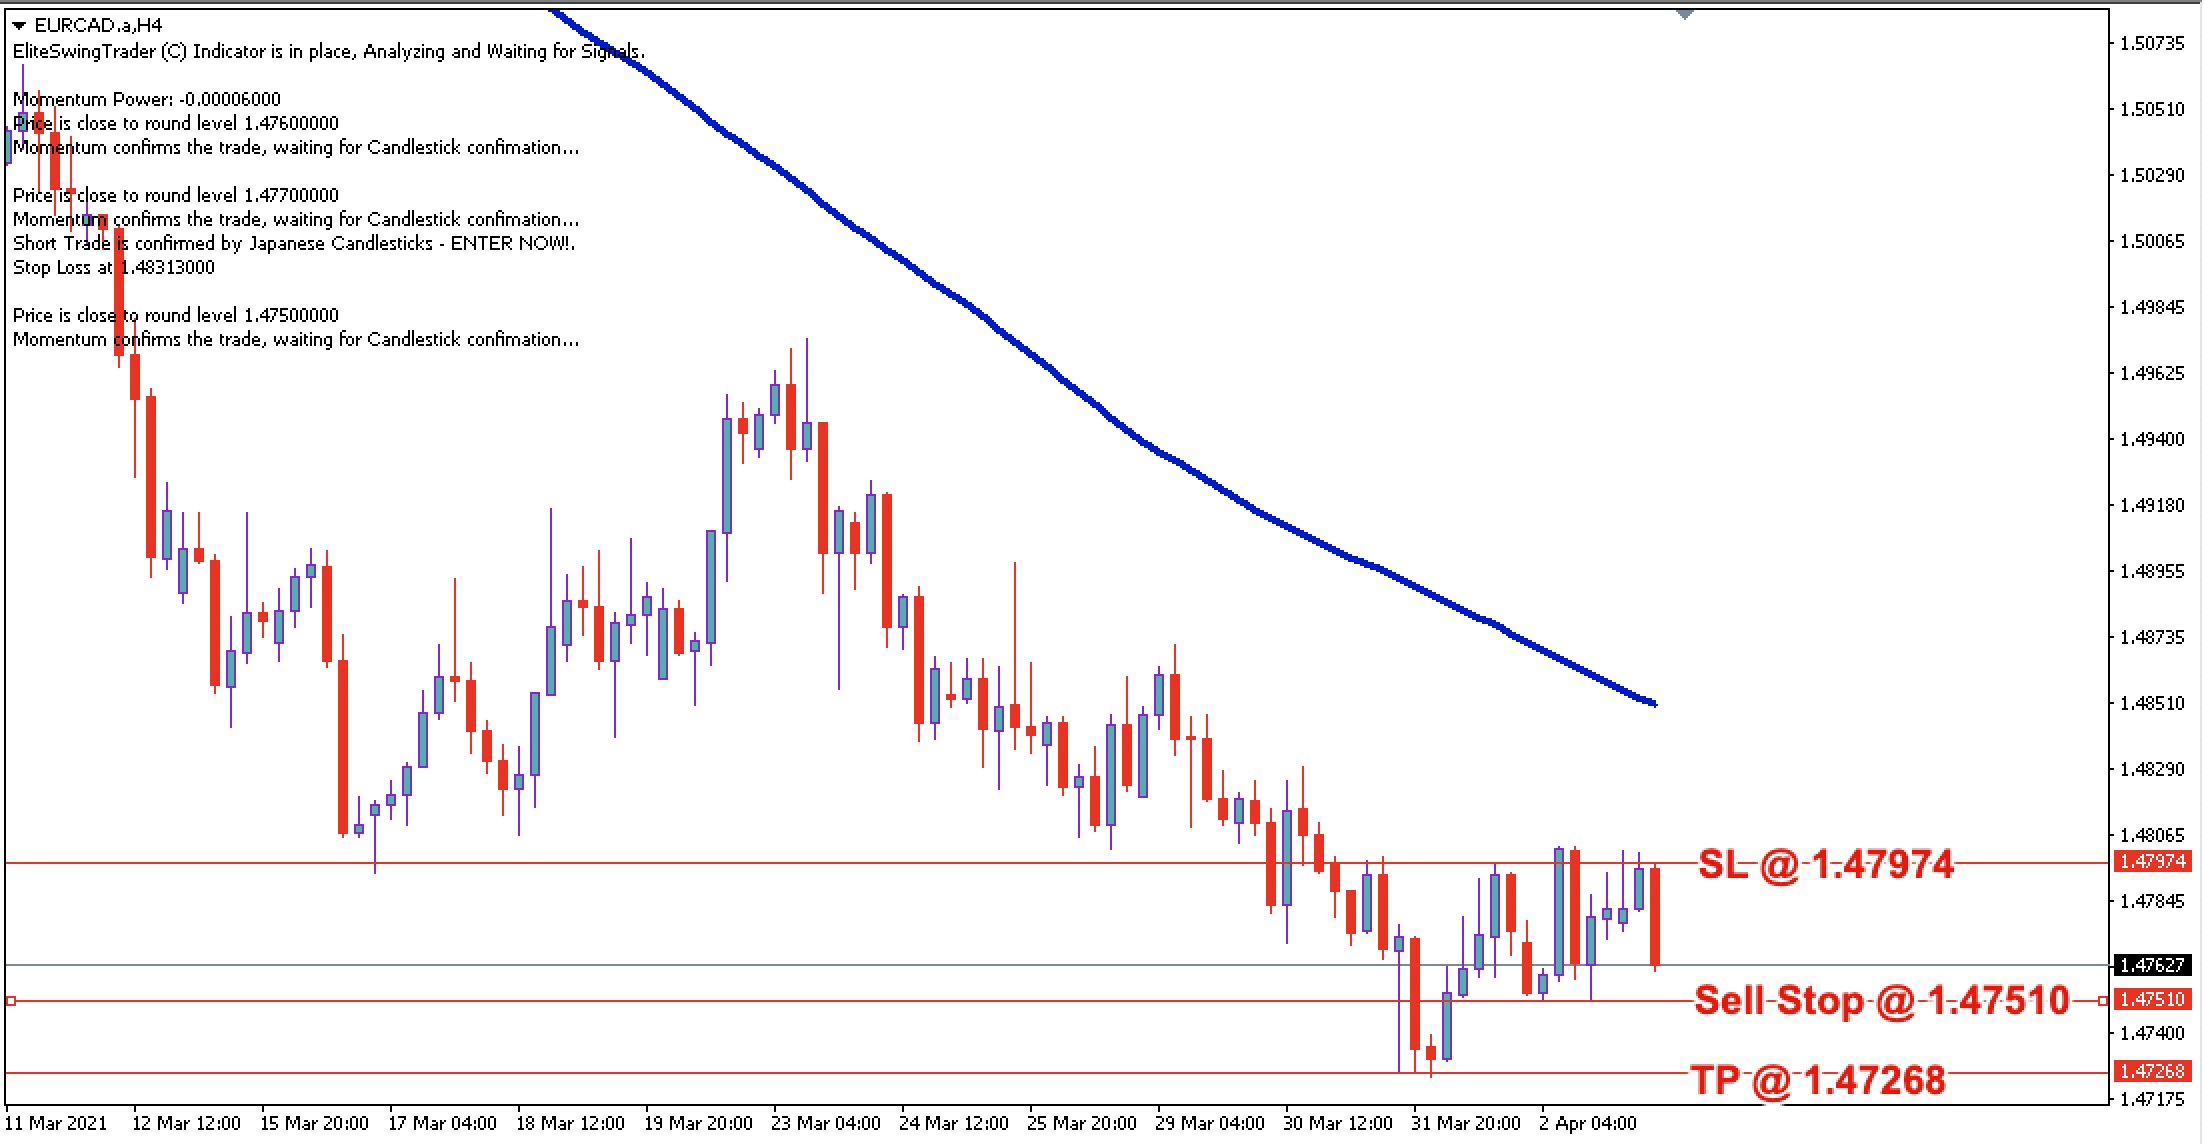 EUR/CAD Daily Price Forecast - 4th April 2021